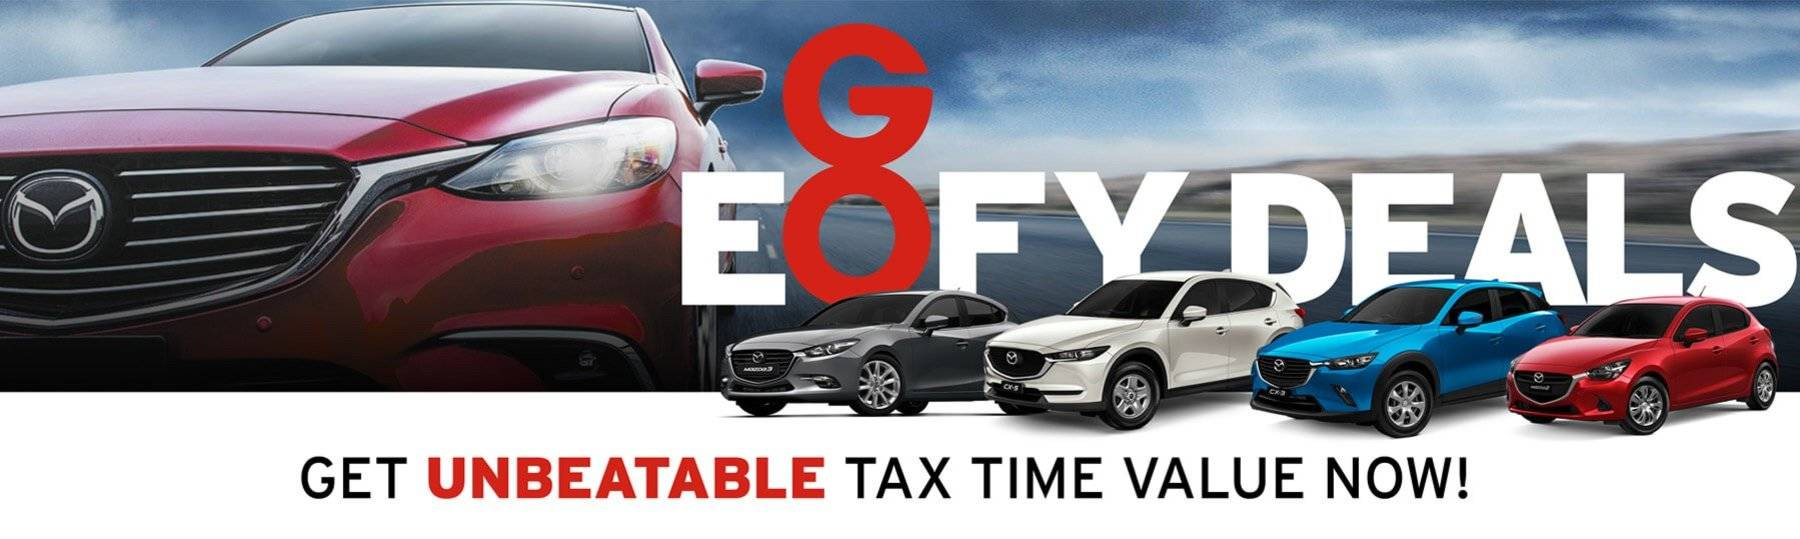 End-of-financial-year-sale-Rockdale-mazda